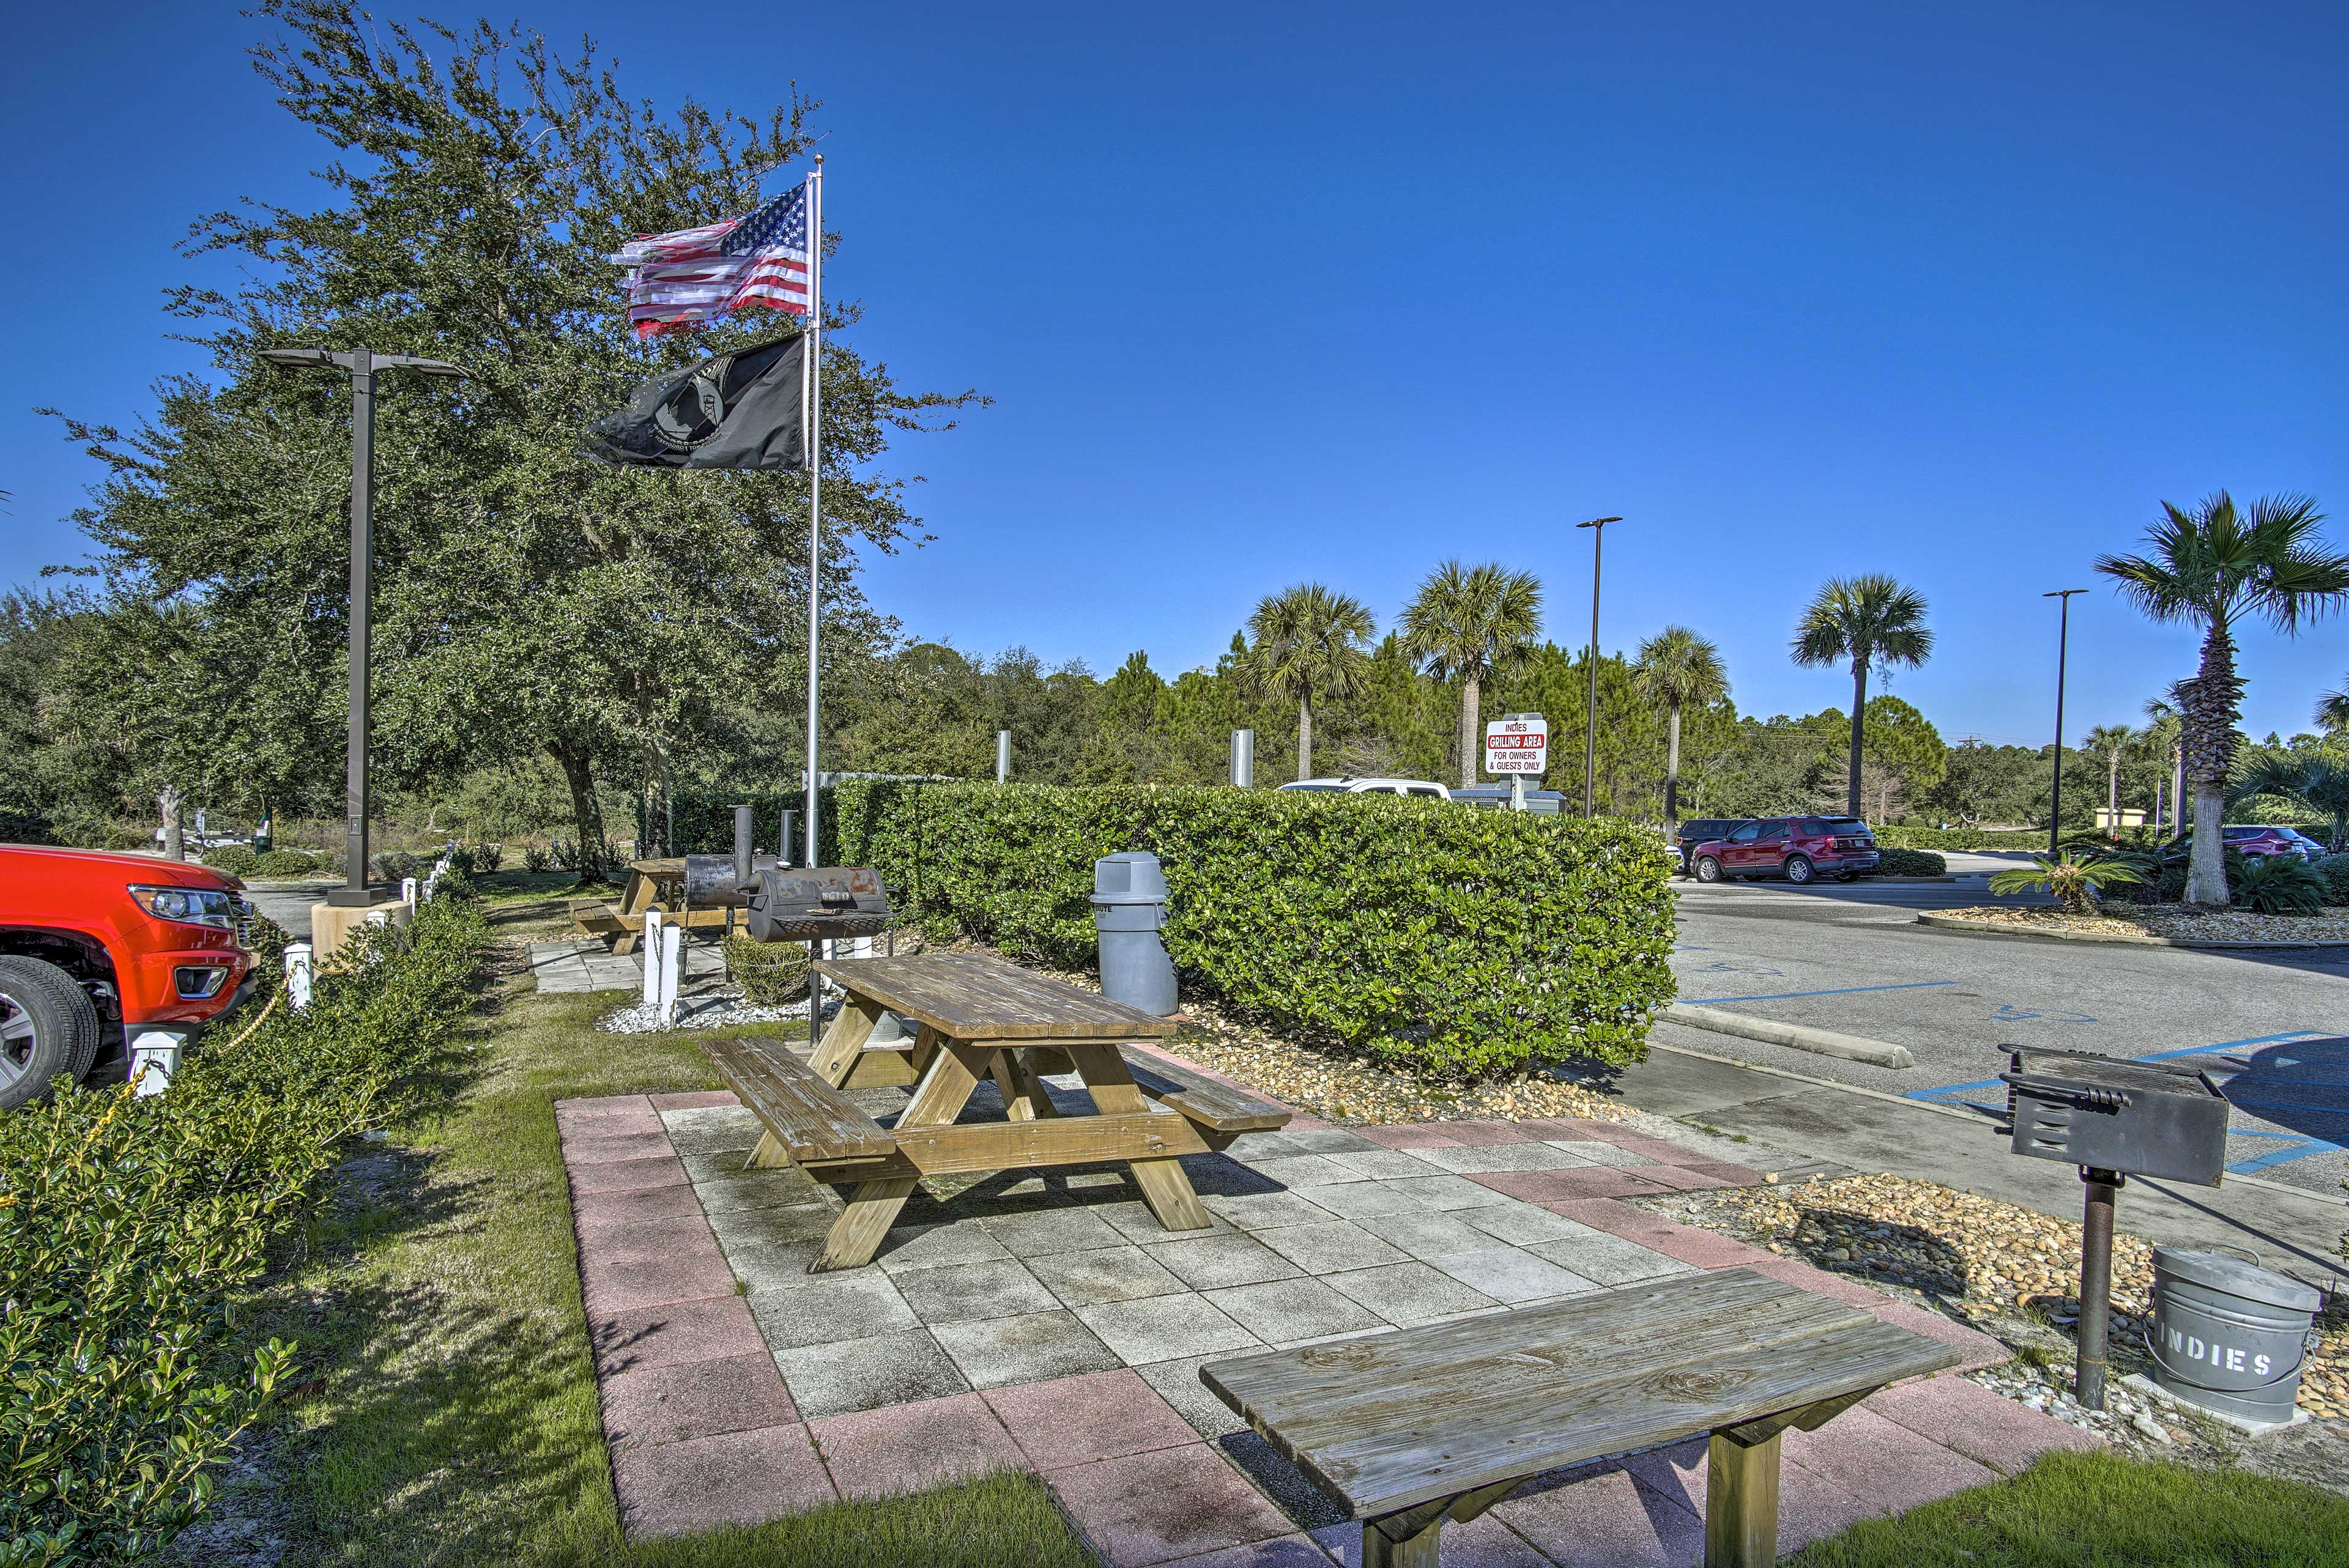 There are picnic areas throughout the property.